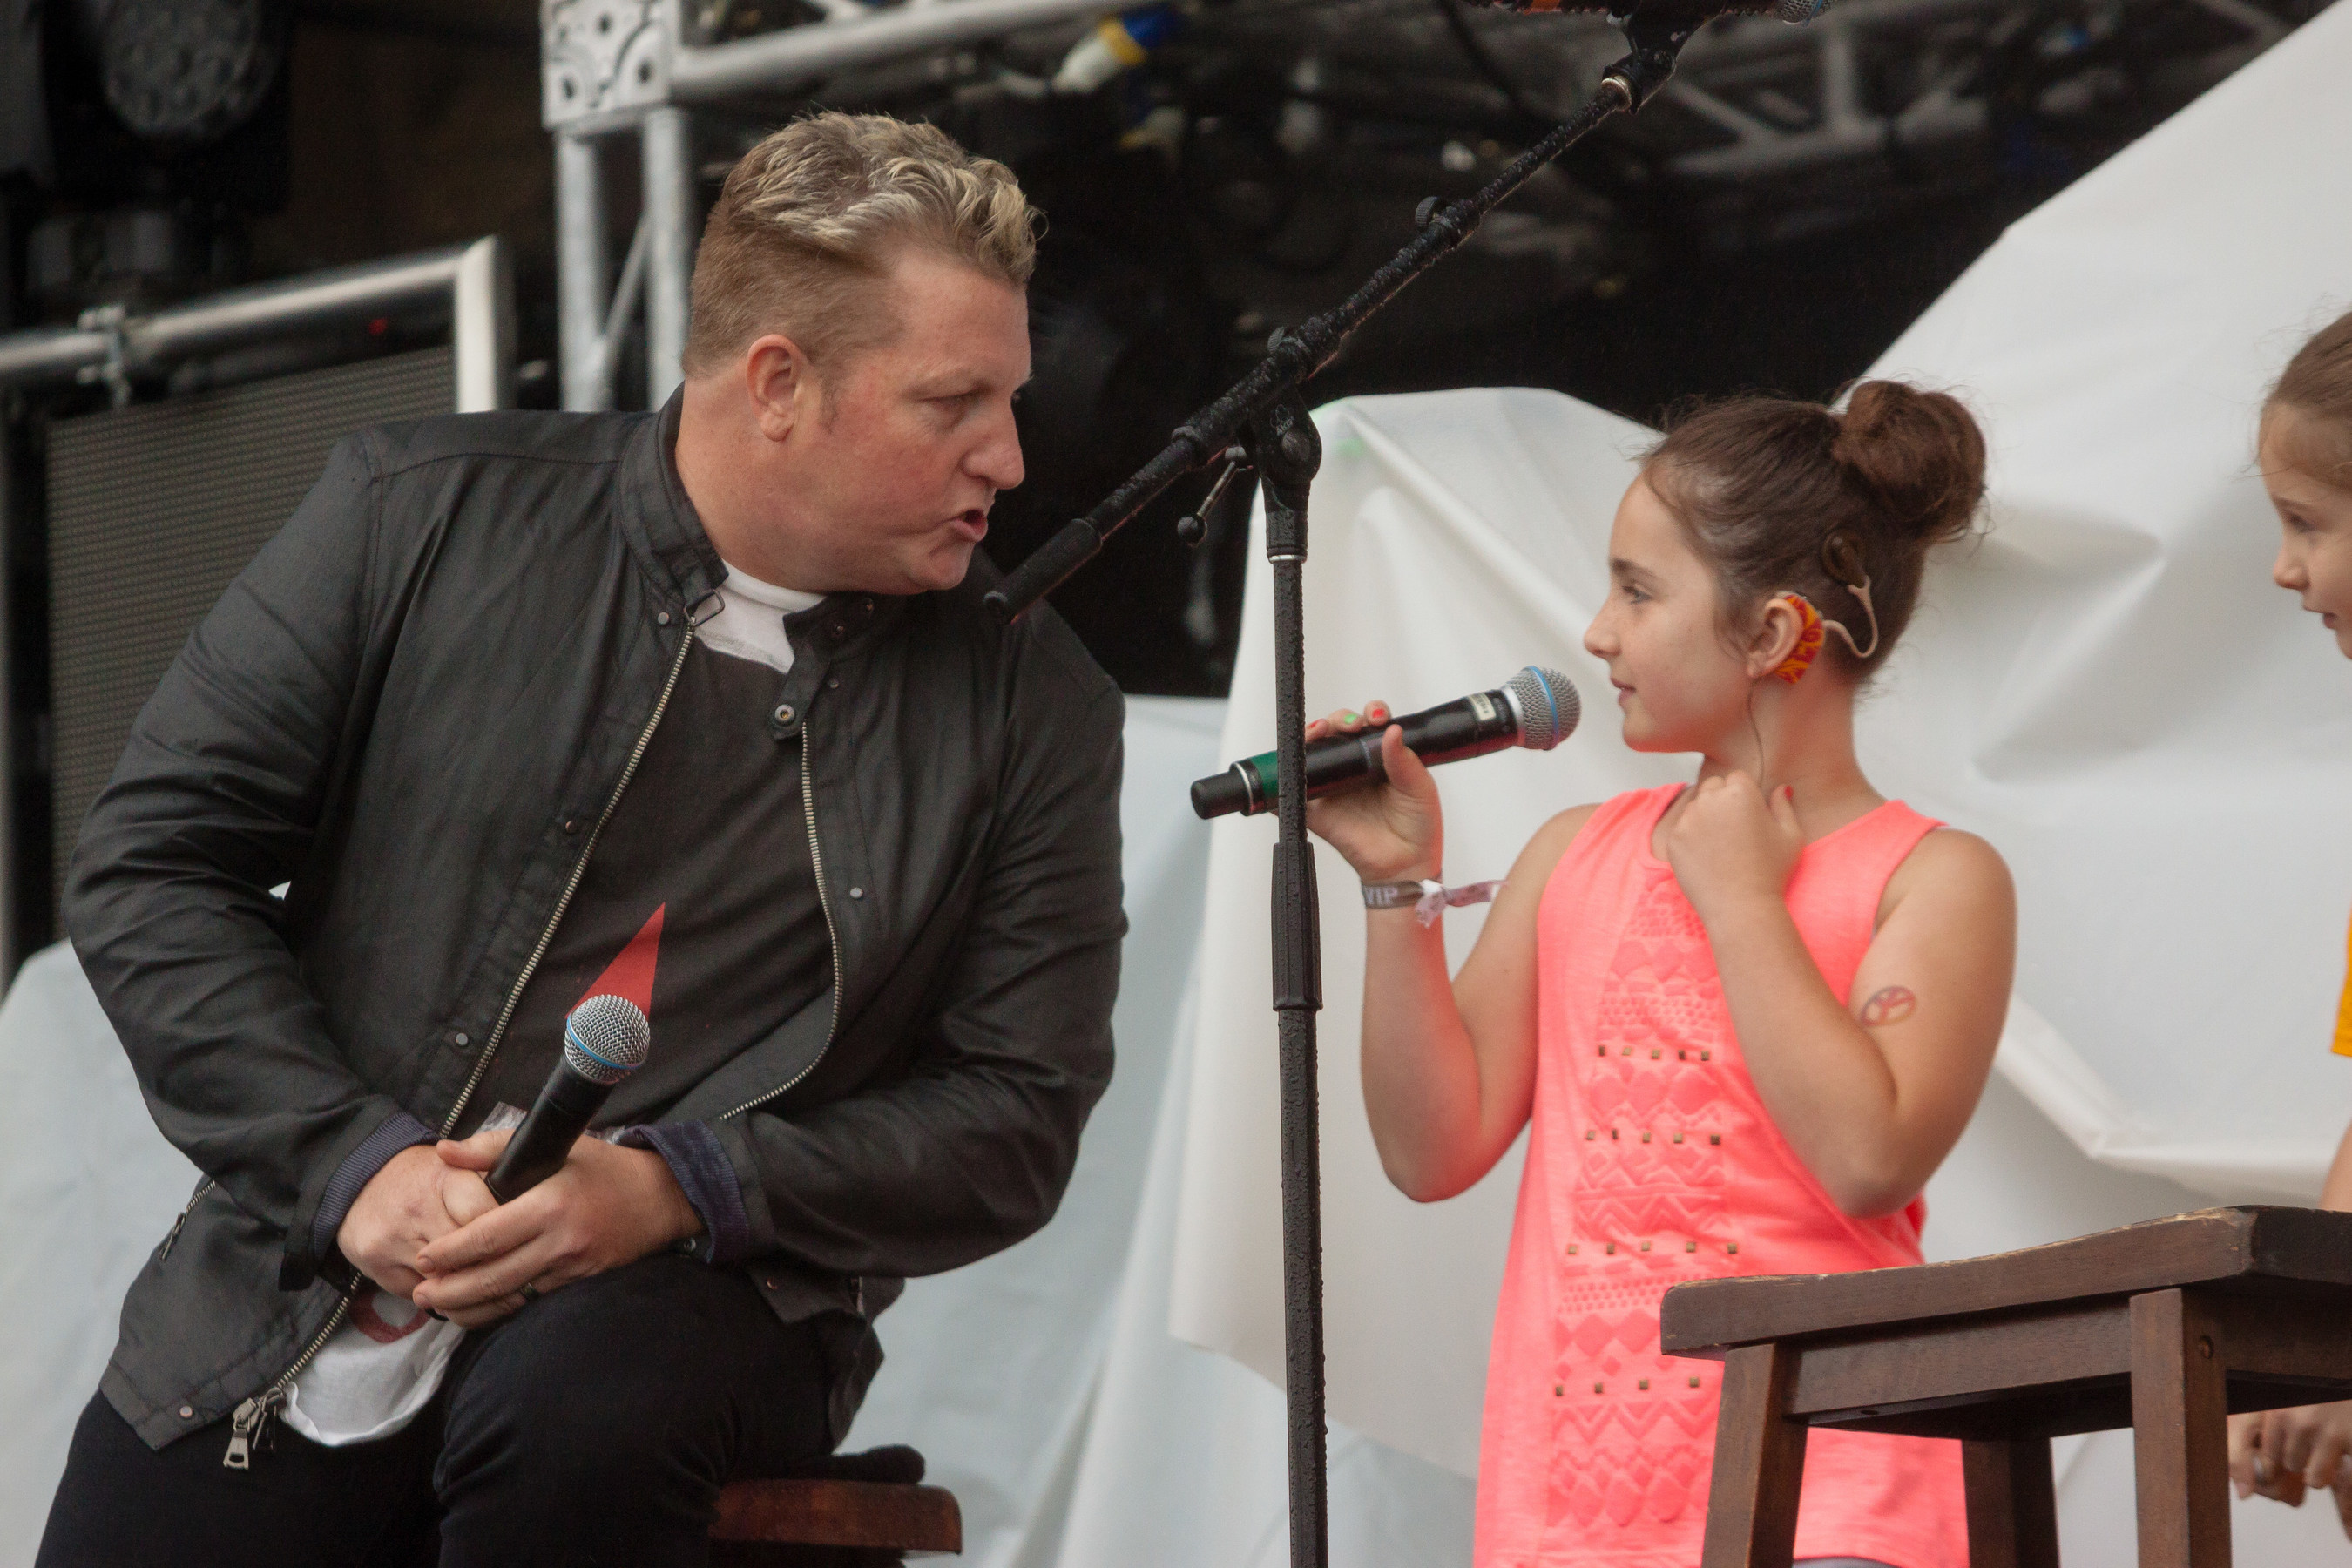 Rascal Flatts' Gary LeVox & 7 yo Niece with Cochlear Implants Perform at Tree Town Music Festival